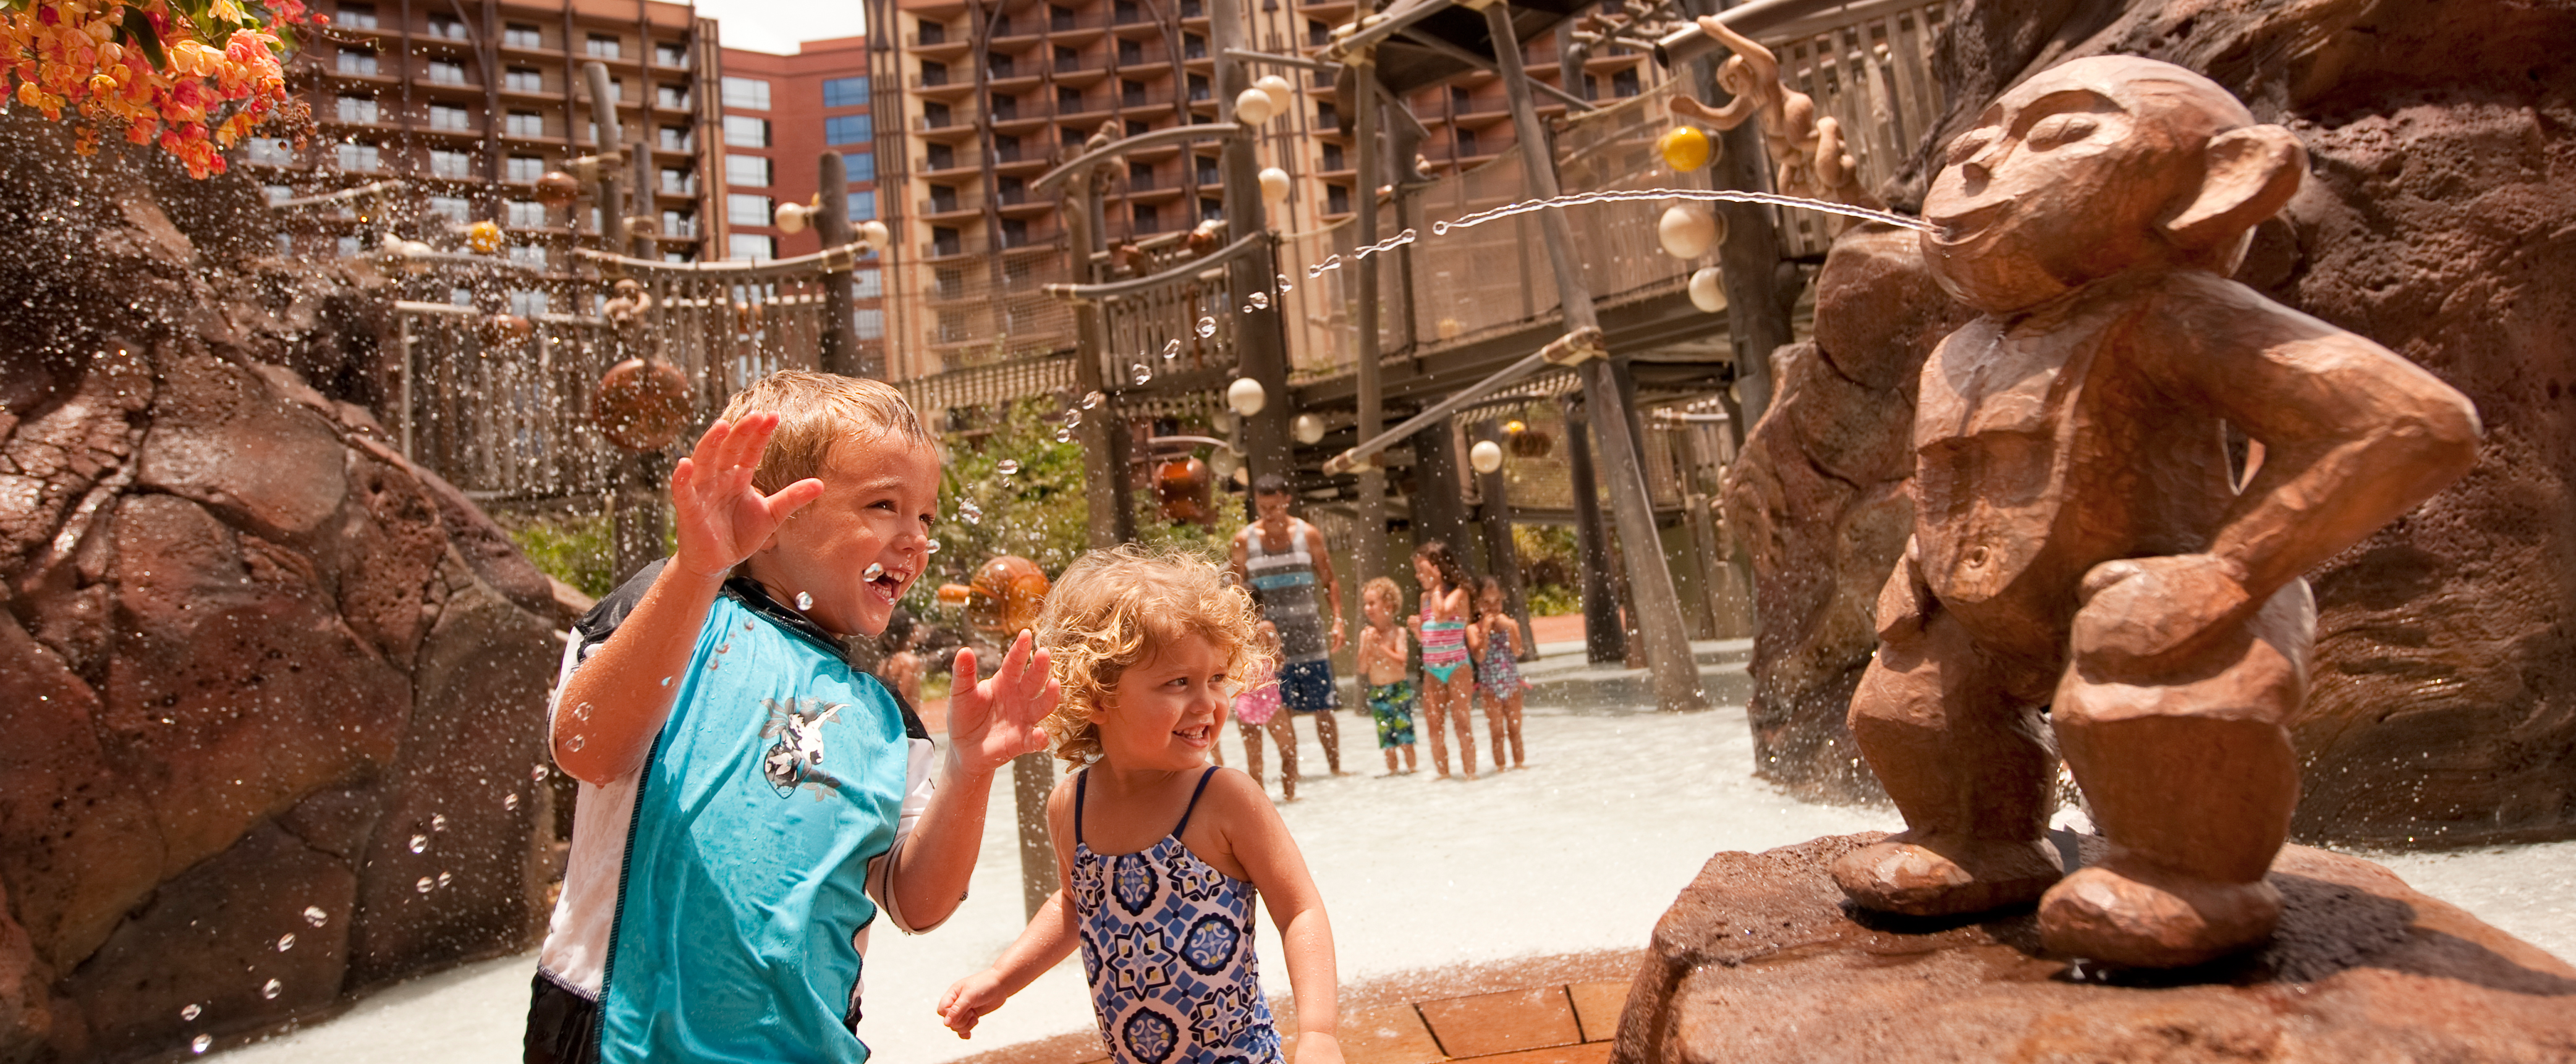 Resort Pool Area Kids Play At Menehune Bridge In The Aulani